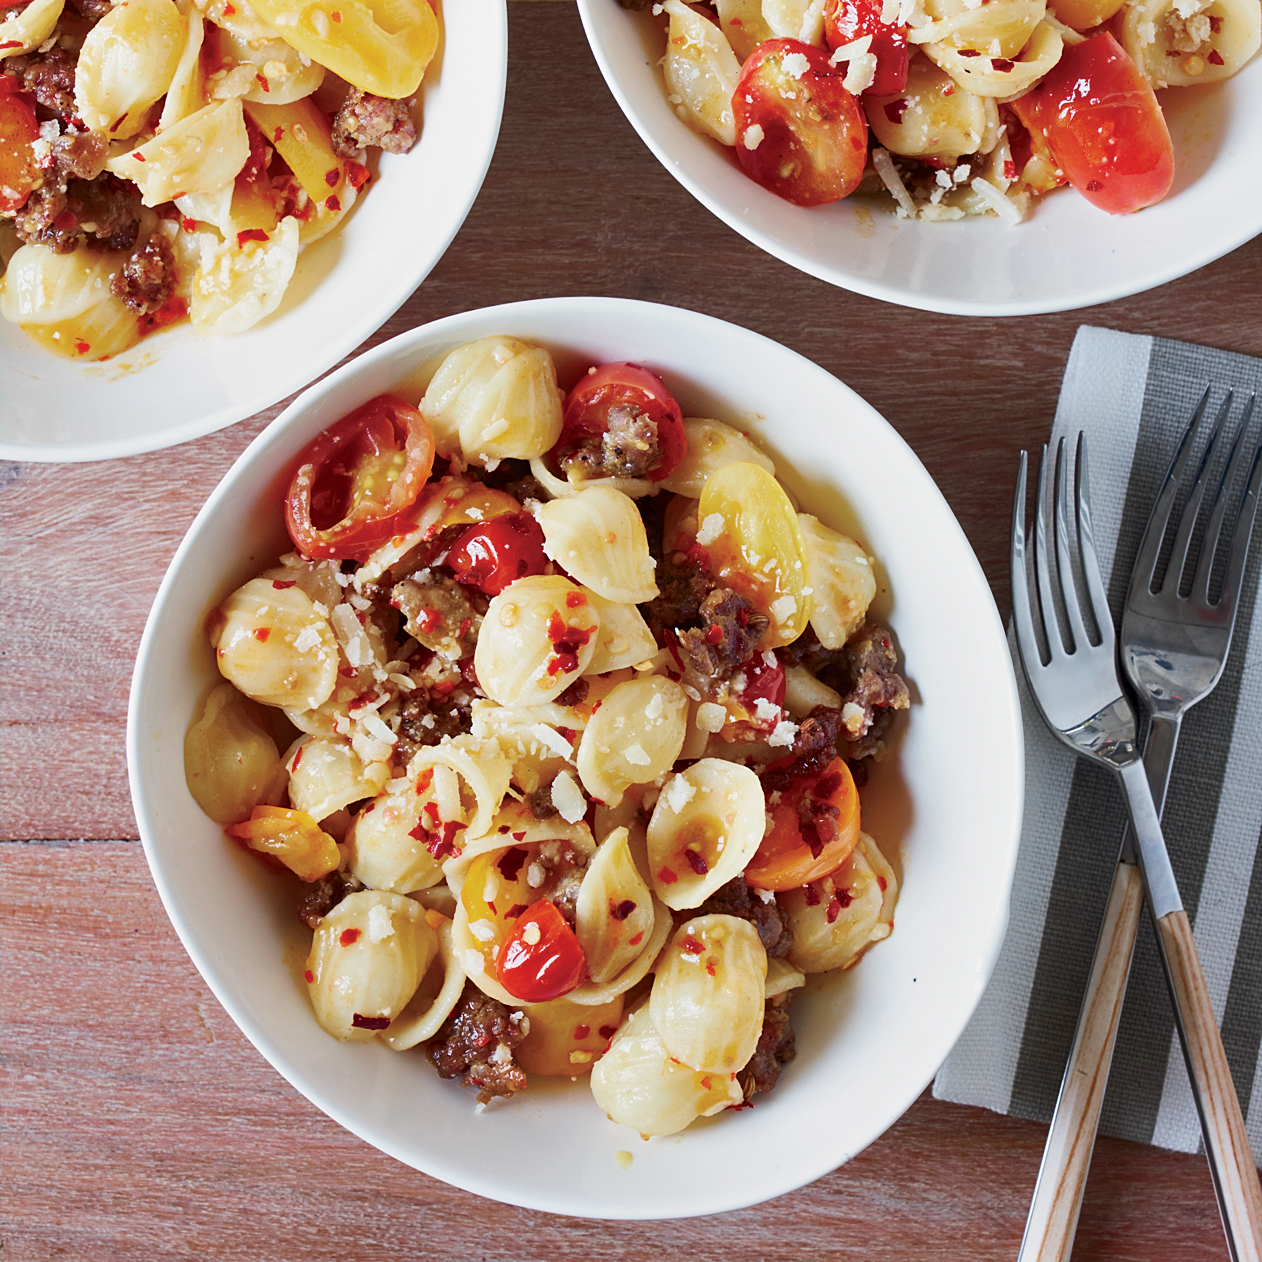 201111-r-orecchiette-with-sausage-and-cherry-tomatoes.jpg